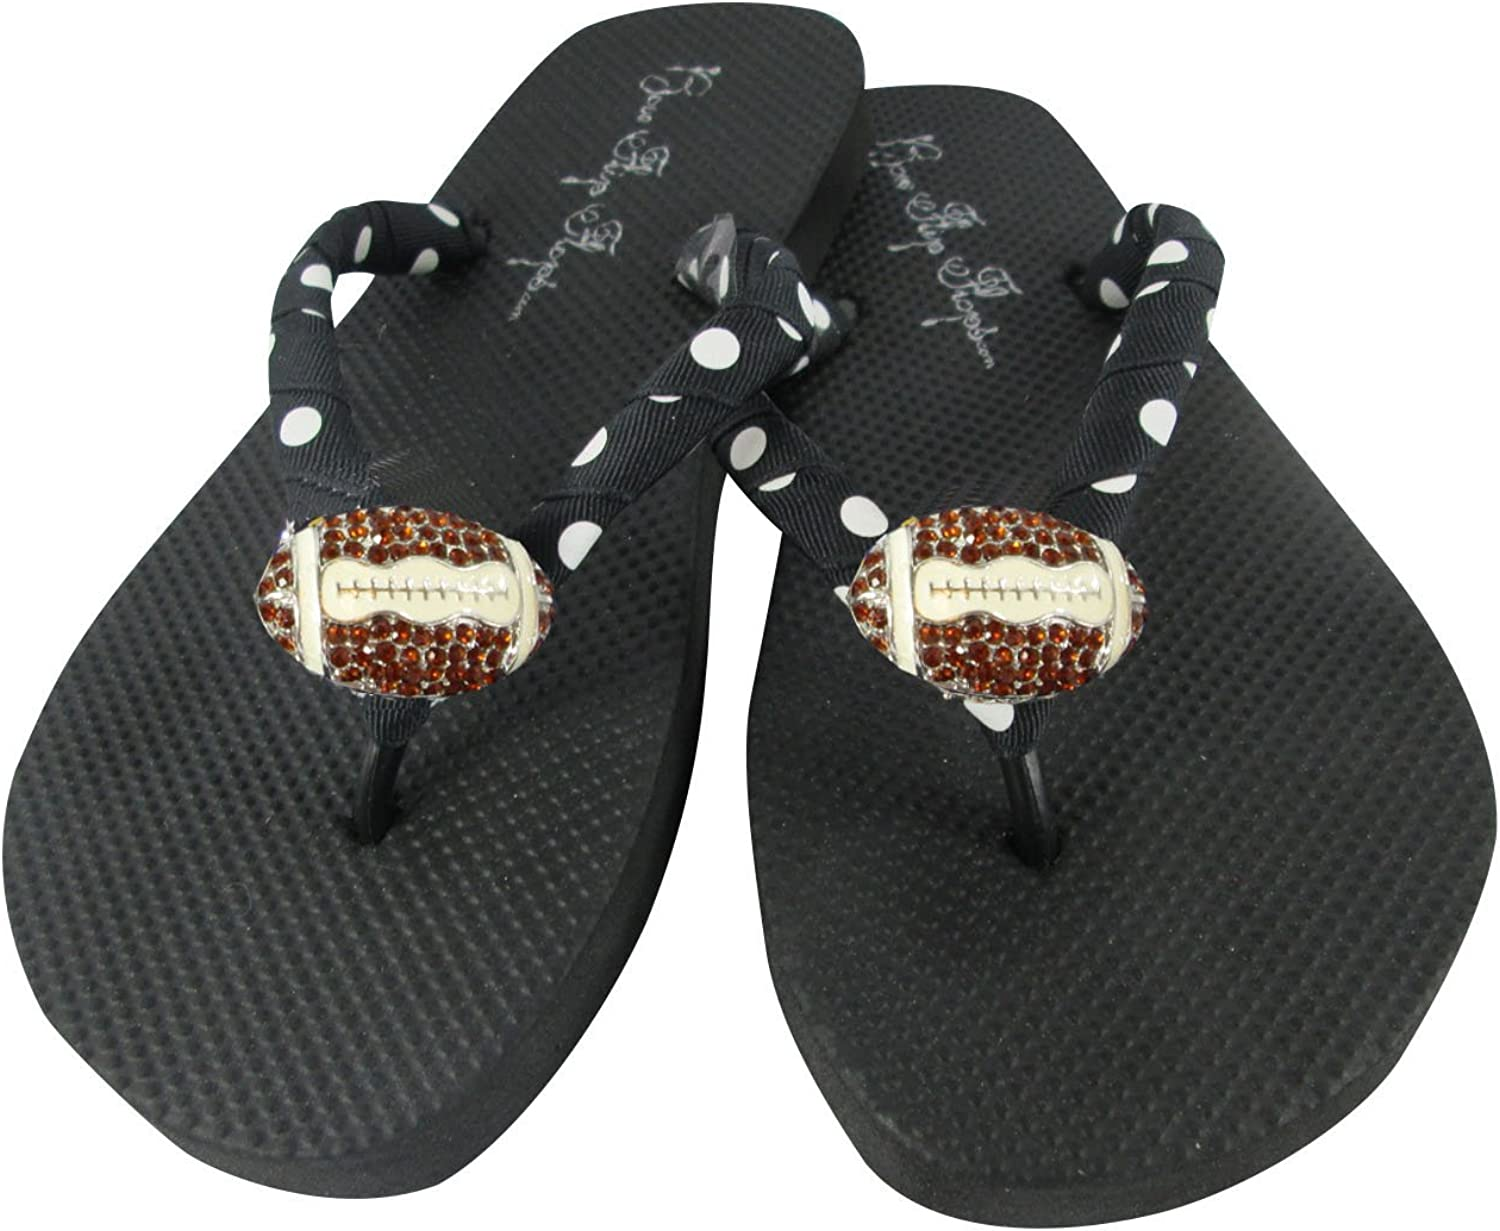 Polka Dot Black and White Football Rhinestone Flip Flops